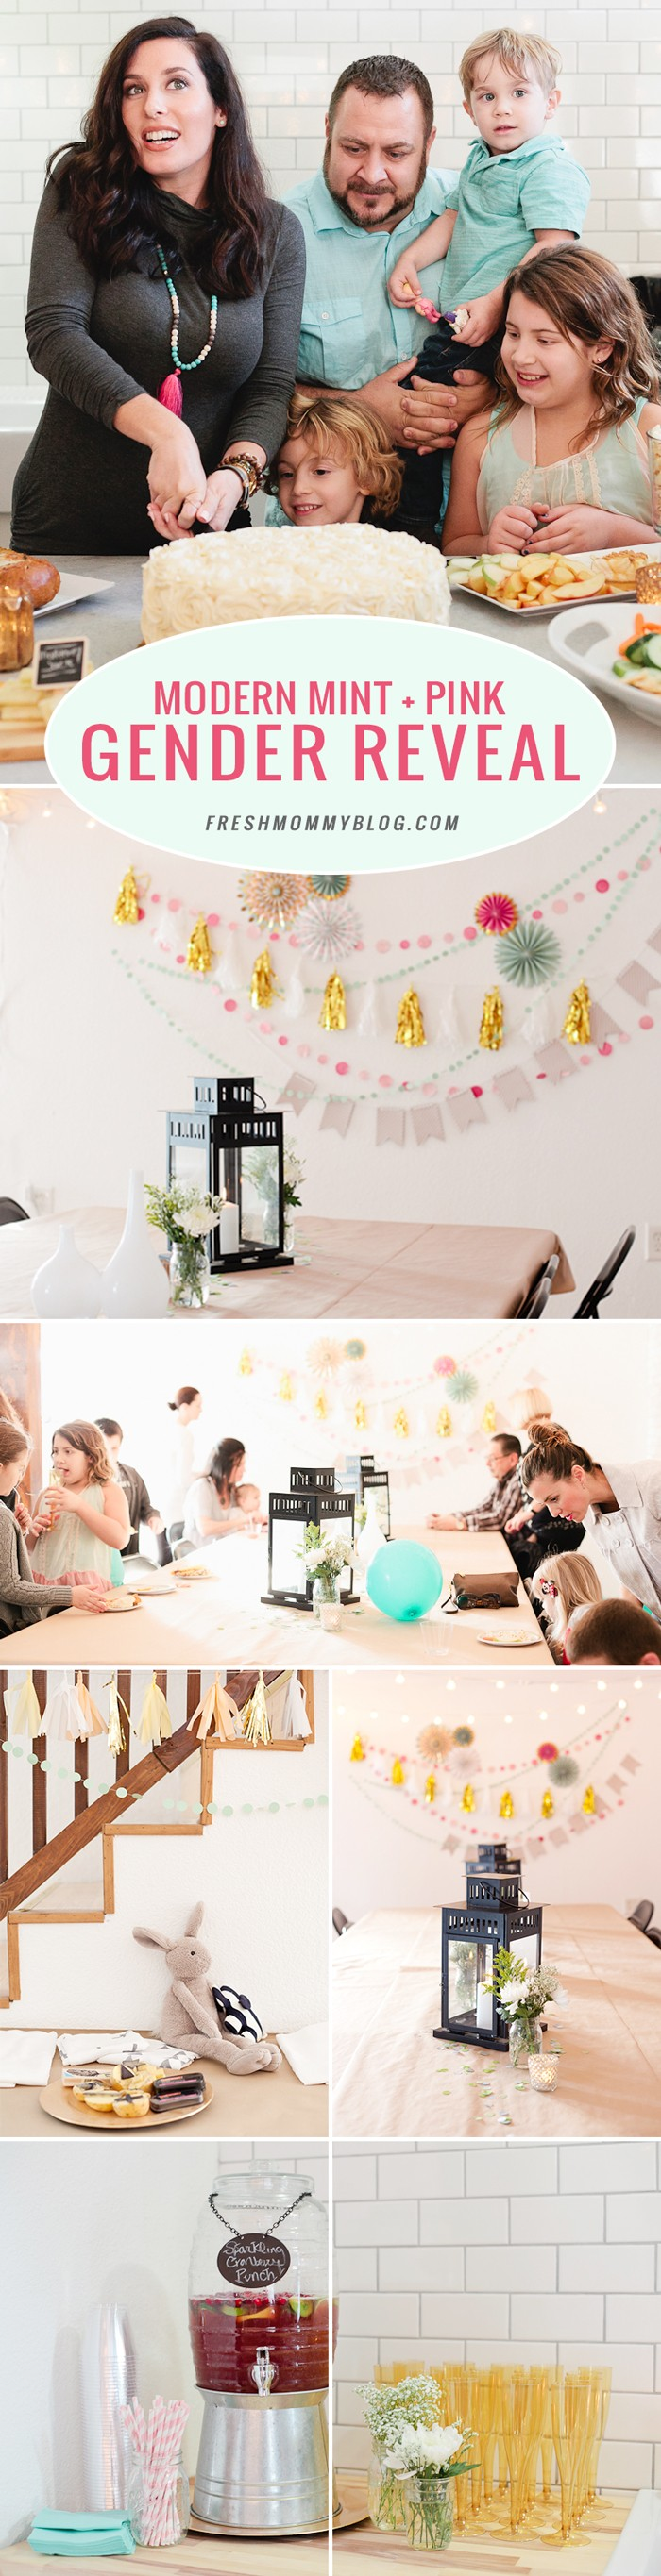 A modern mint + pink gender reveal party with DIY stamped burp cloths. Bright and cheery!